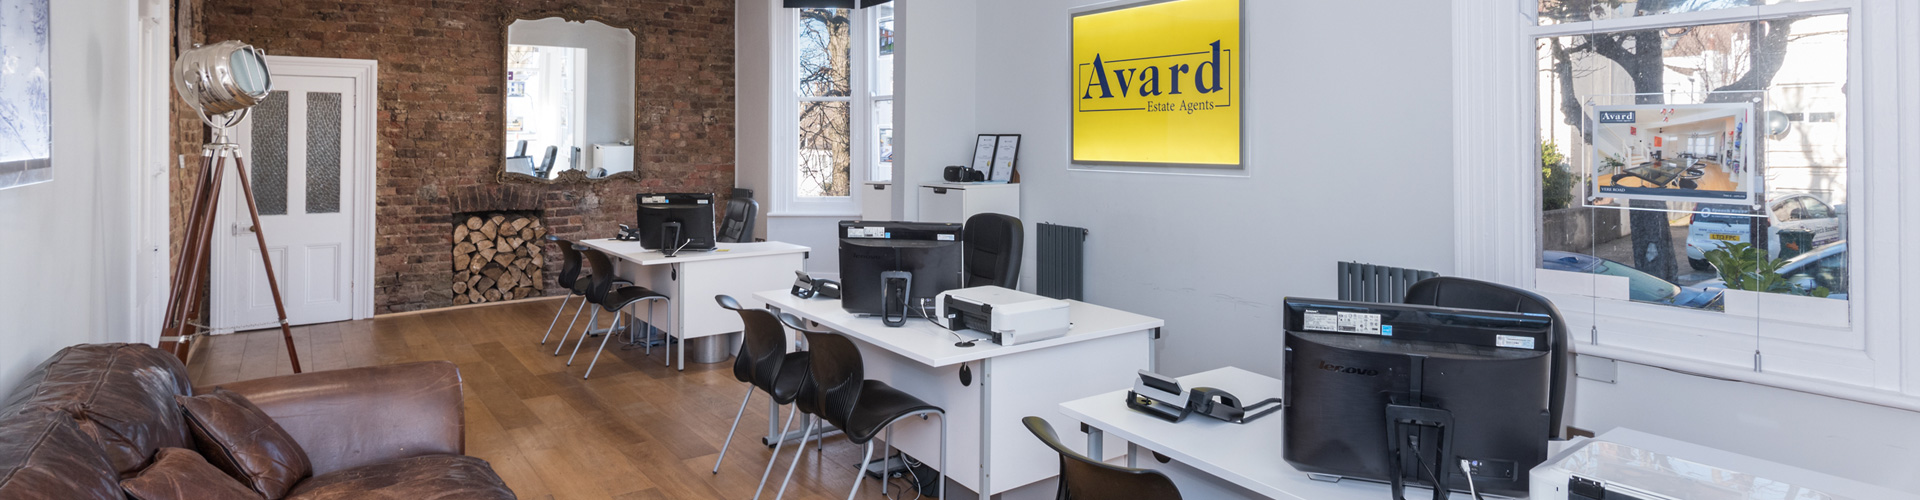 avards estate agents office sussex